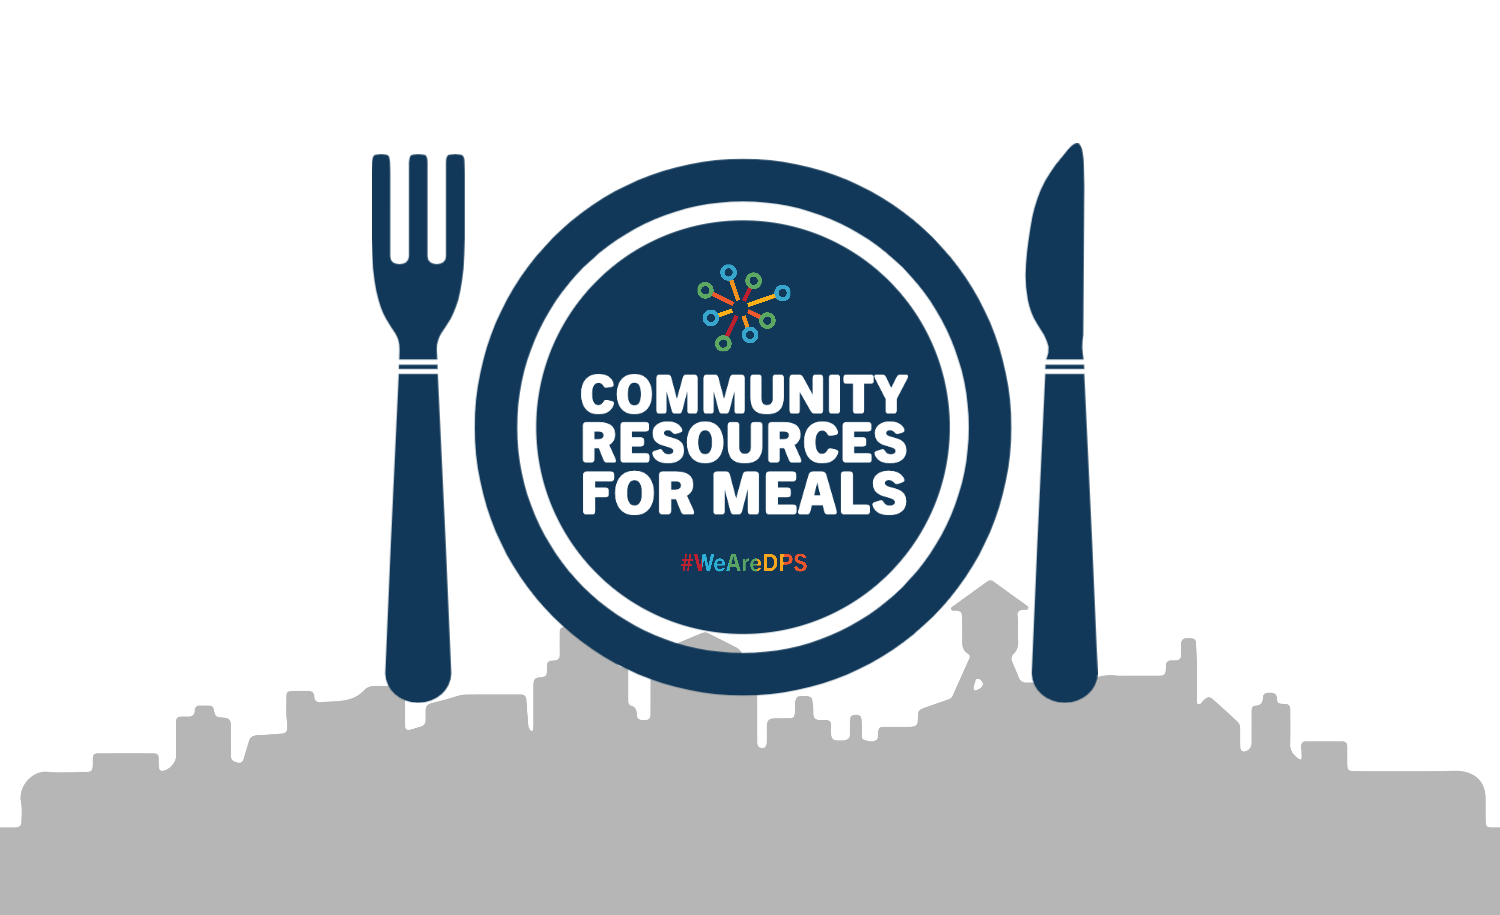 CommunityMeals